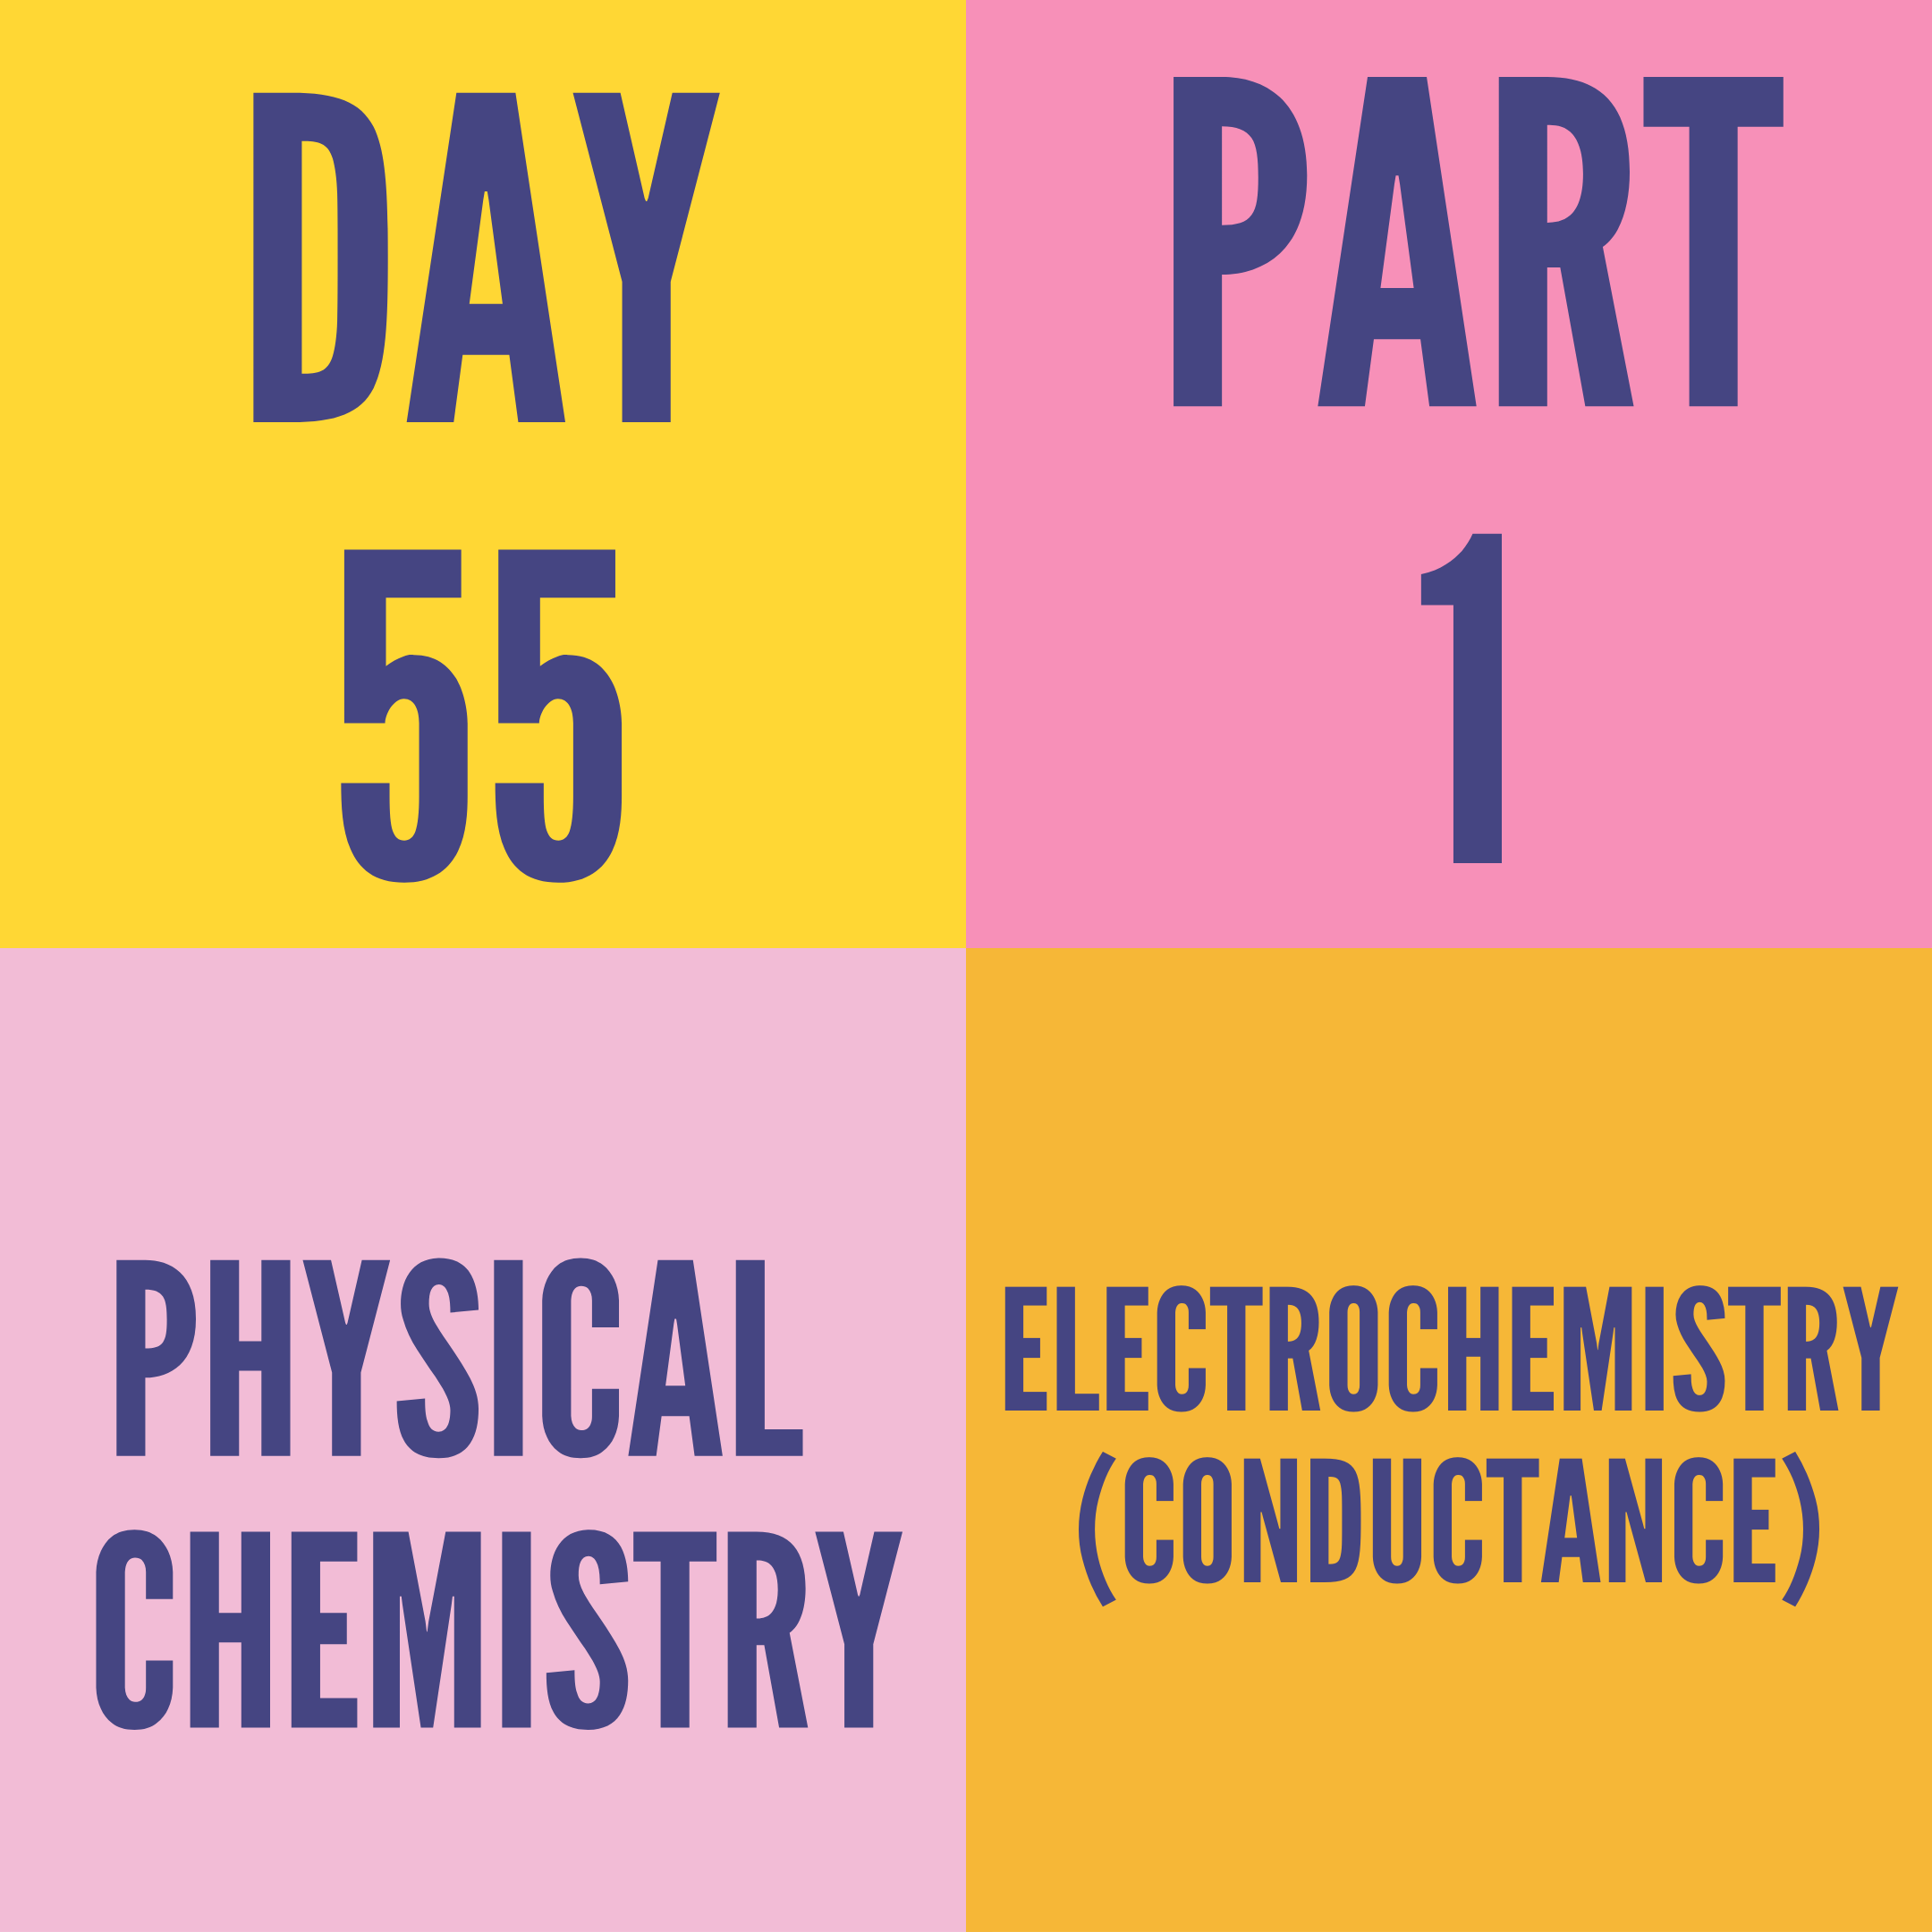 DAY-55 PART-1 ELECTROCHEMISTRY (CONDUCTANCE)